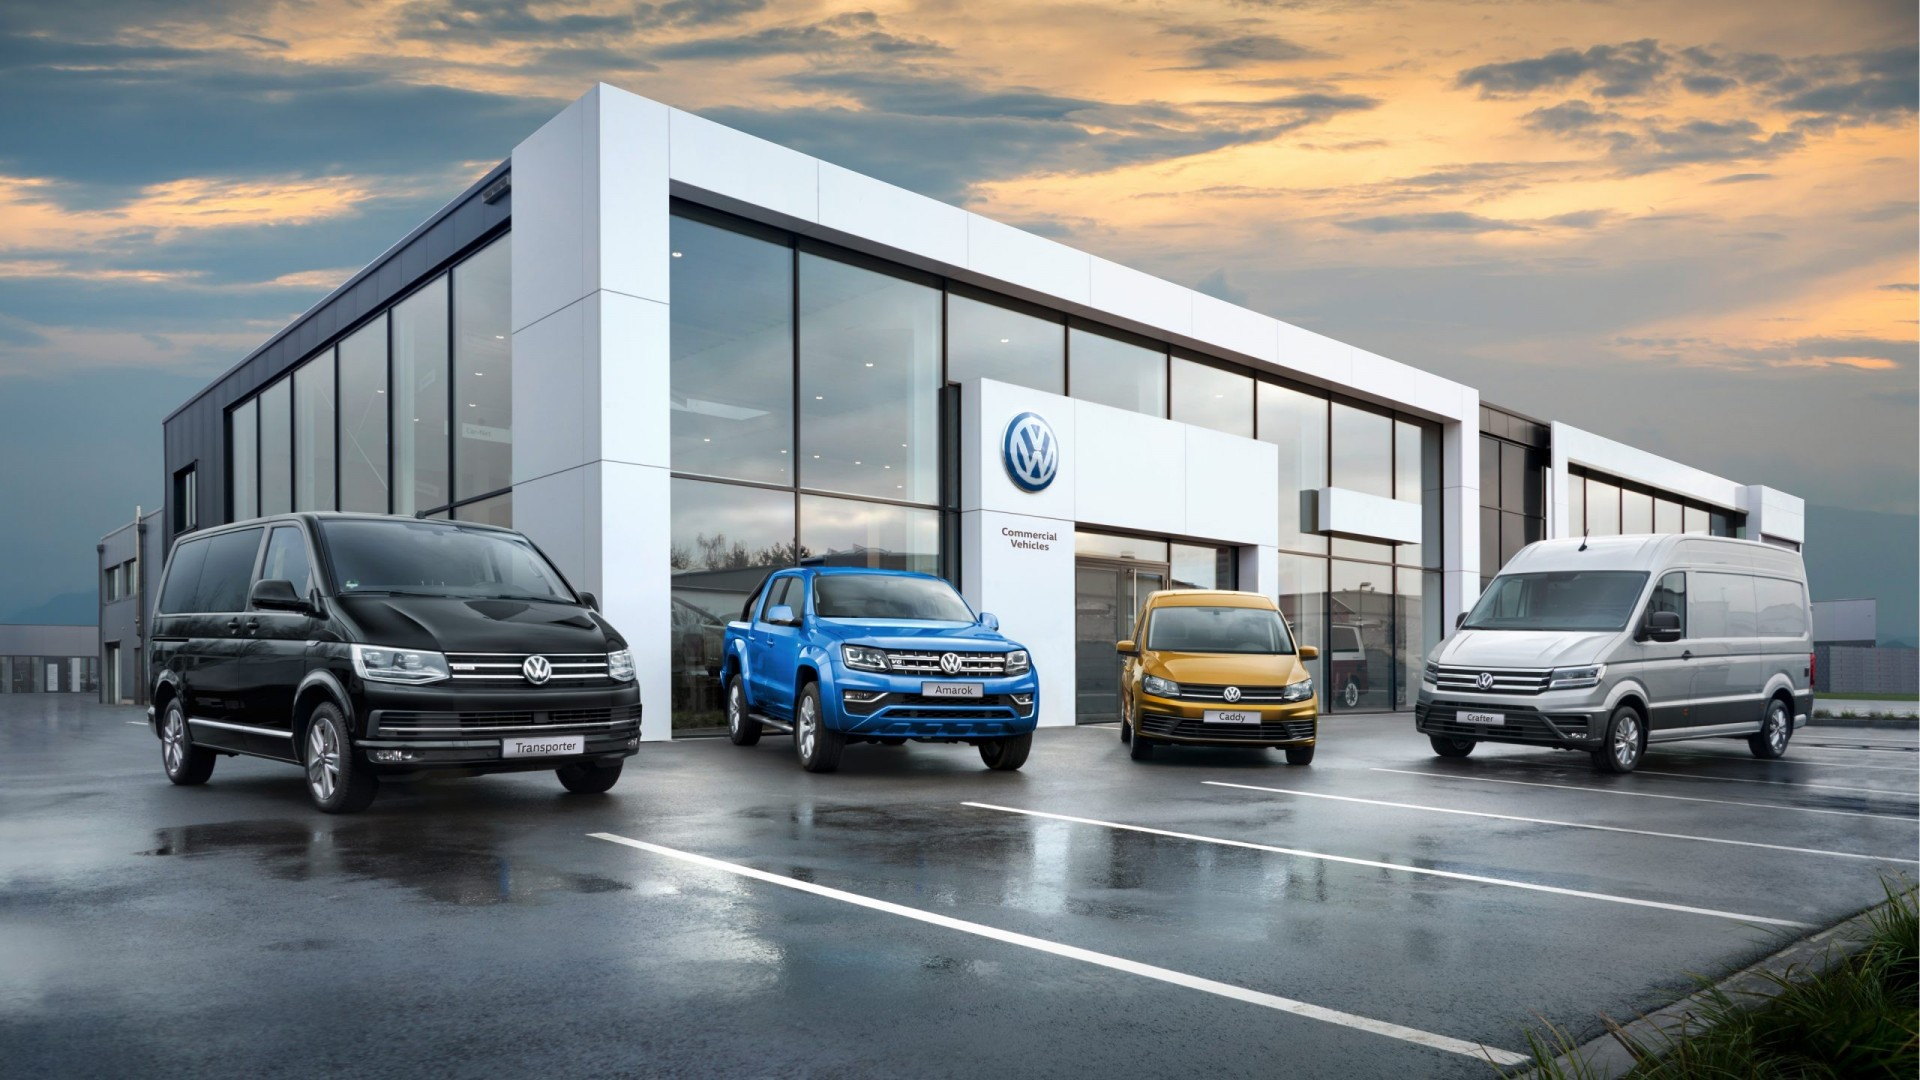 Volkswagen Wexford Wexford Volkswagen New And Used Cars